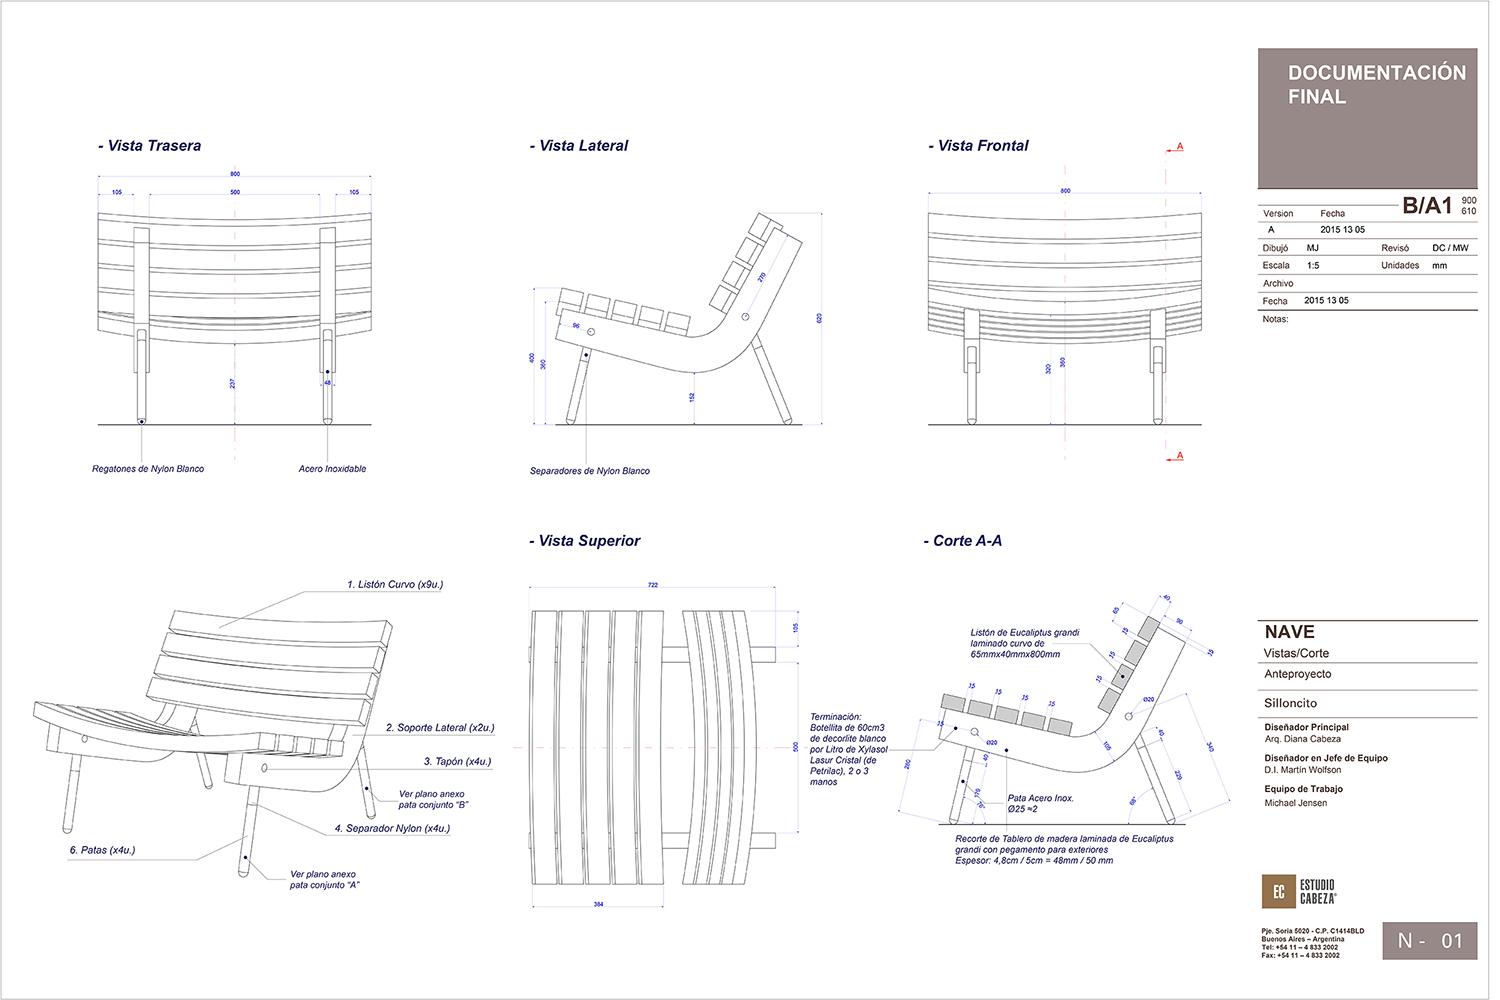 Construction drawings }